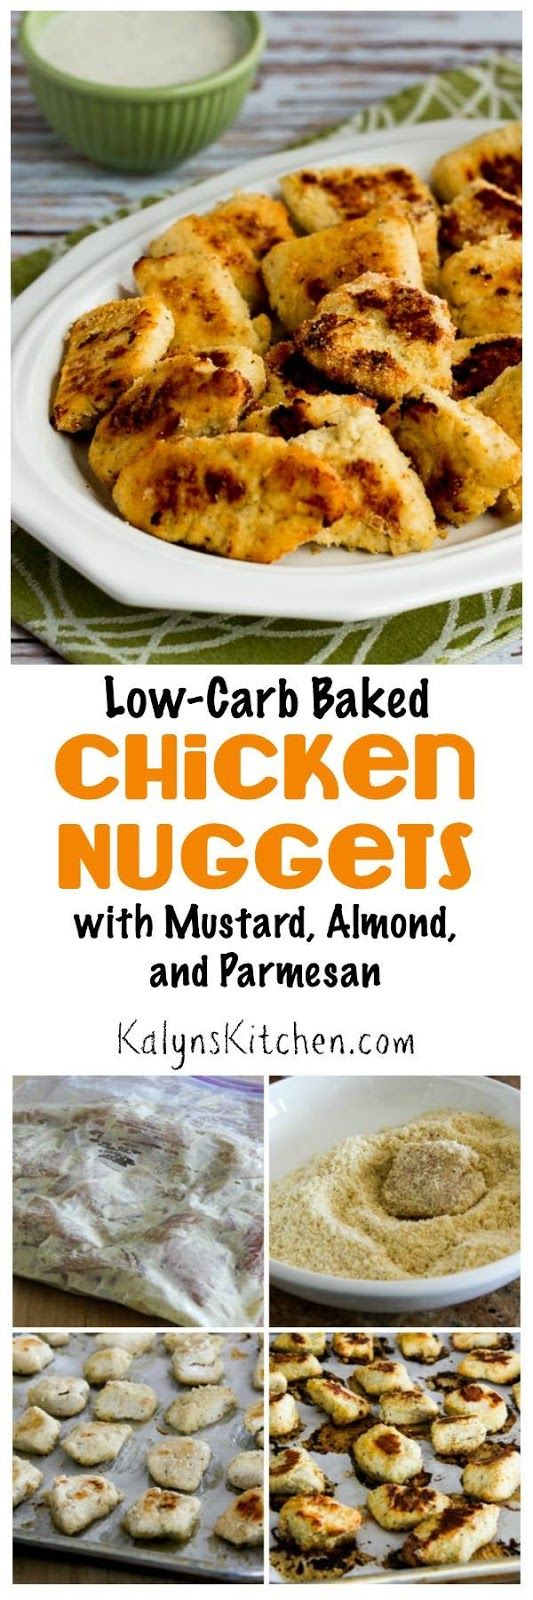 We absolutely loved these Low Carb Baked Chicken Nuggets with Mustard  Almond  and Parmesan  and using parchment paper helped the coating stick to the chicken and made cleaning the messy pan a breeze  Perfect with Grandma Denny  39 s From Scratch Ranch Style Dip for Veggies   found on KalynsKitchen com